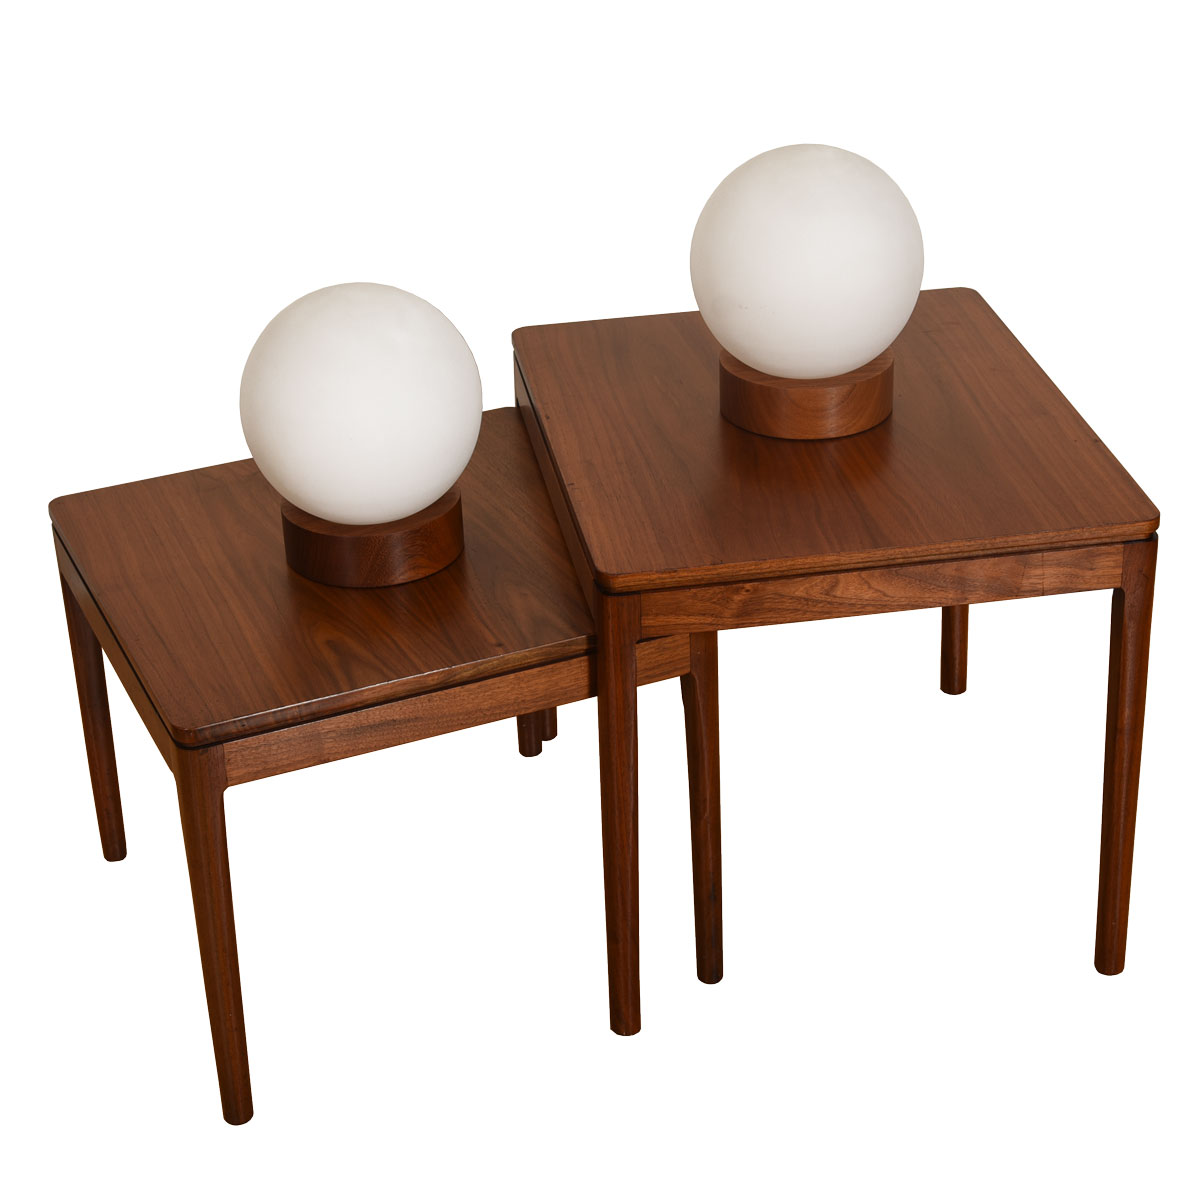 Pair of White Globe Table Lamps with Teak Base